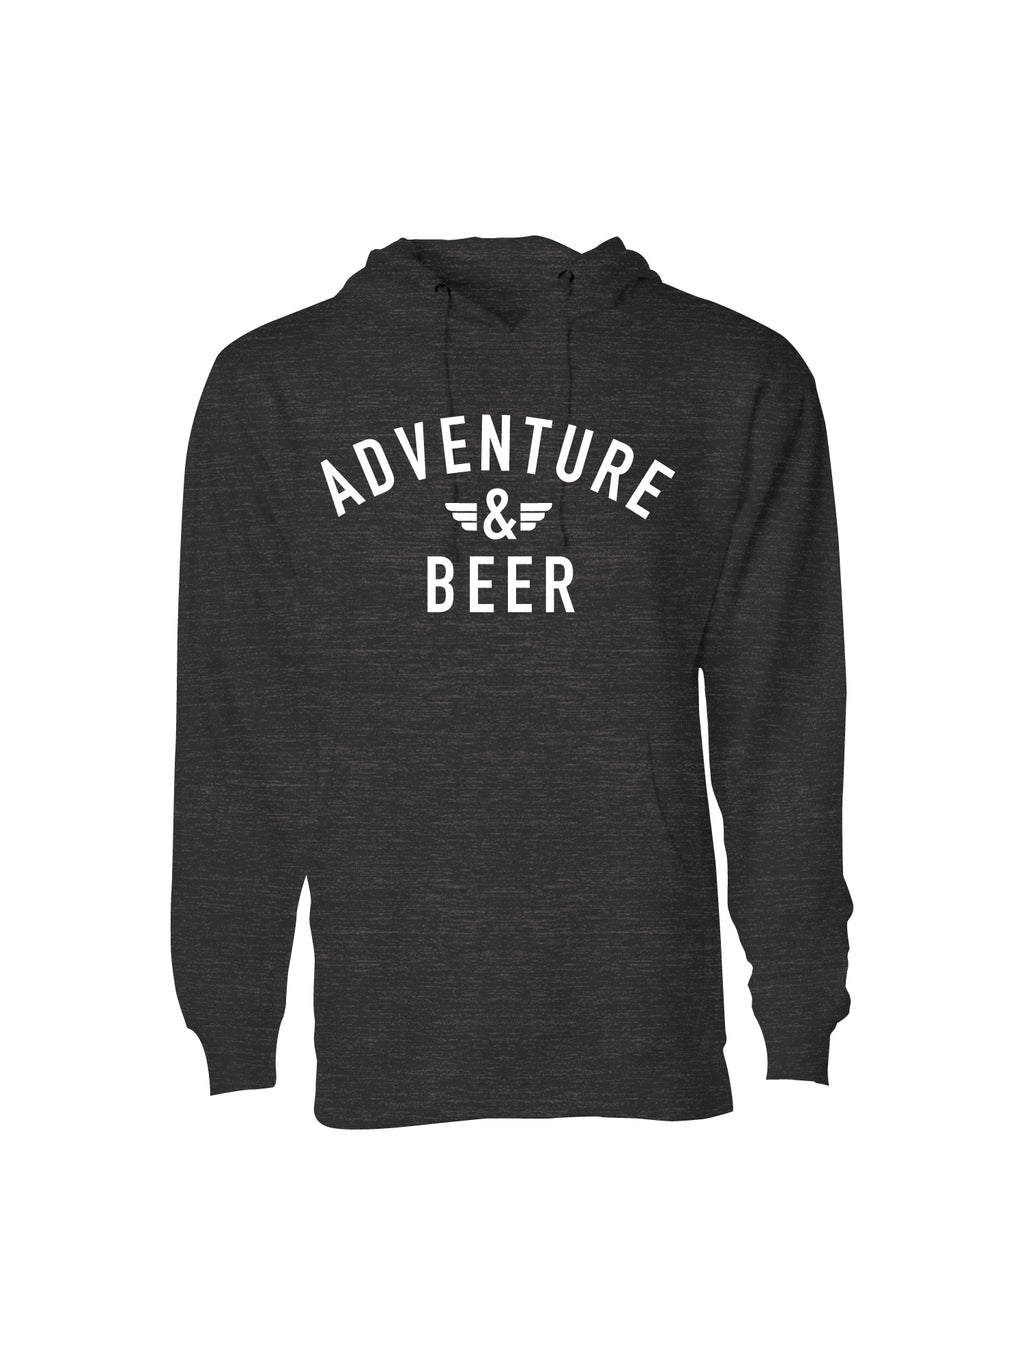 ADVENTURE AND BEER PULL OVER- CHARCOAL - Anderson Bros Design and Supply